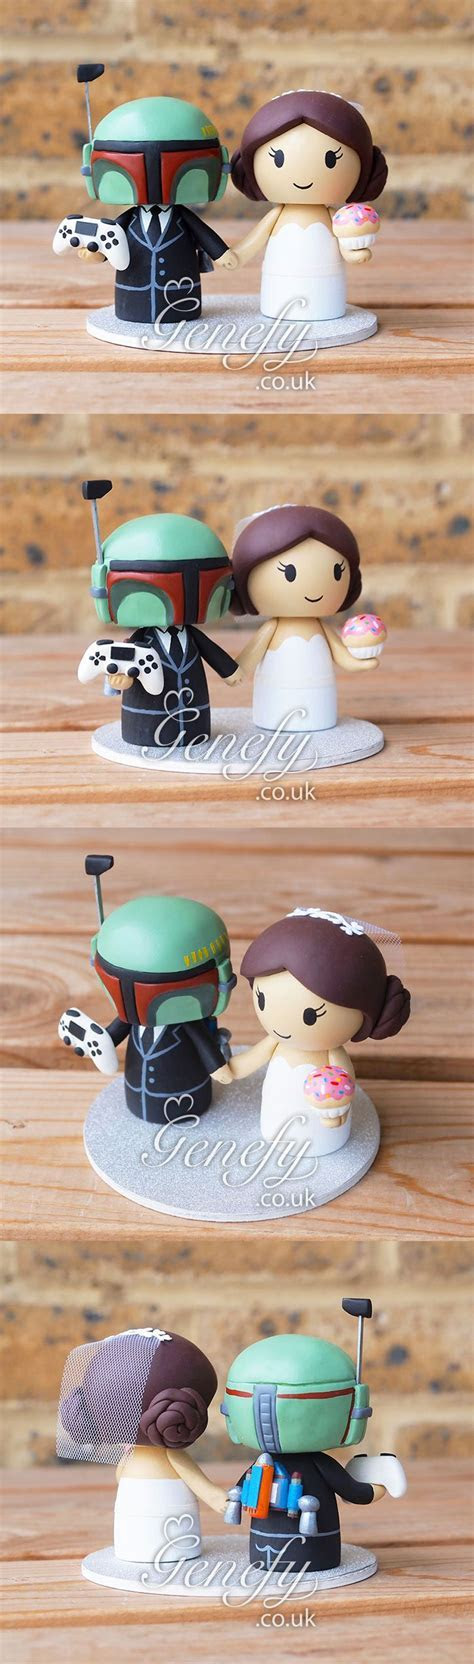 Pin by Kelly Weaver on Boba fett   Star wars wedding cake